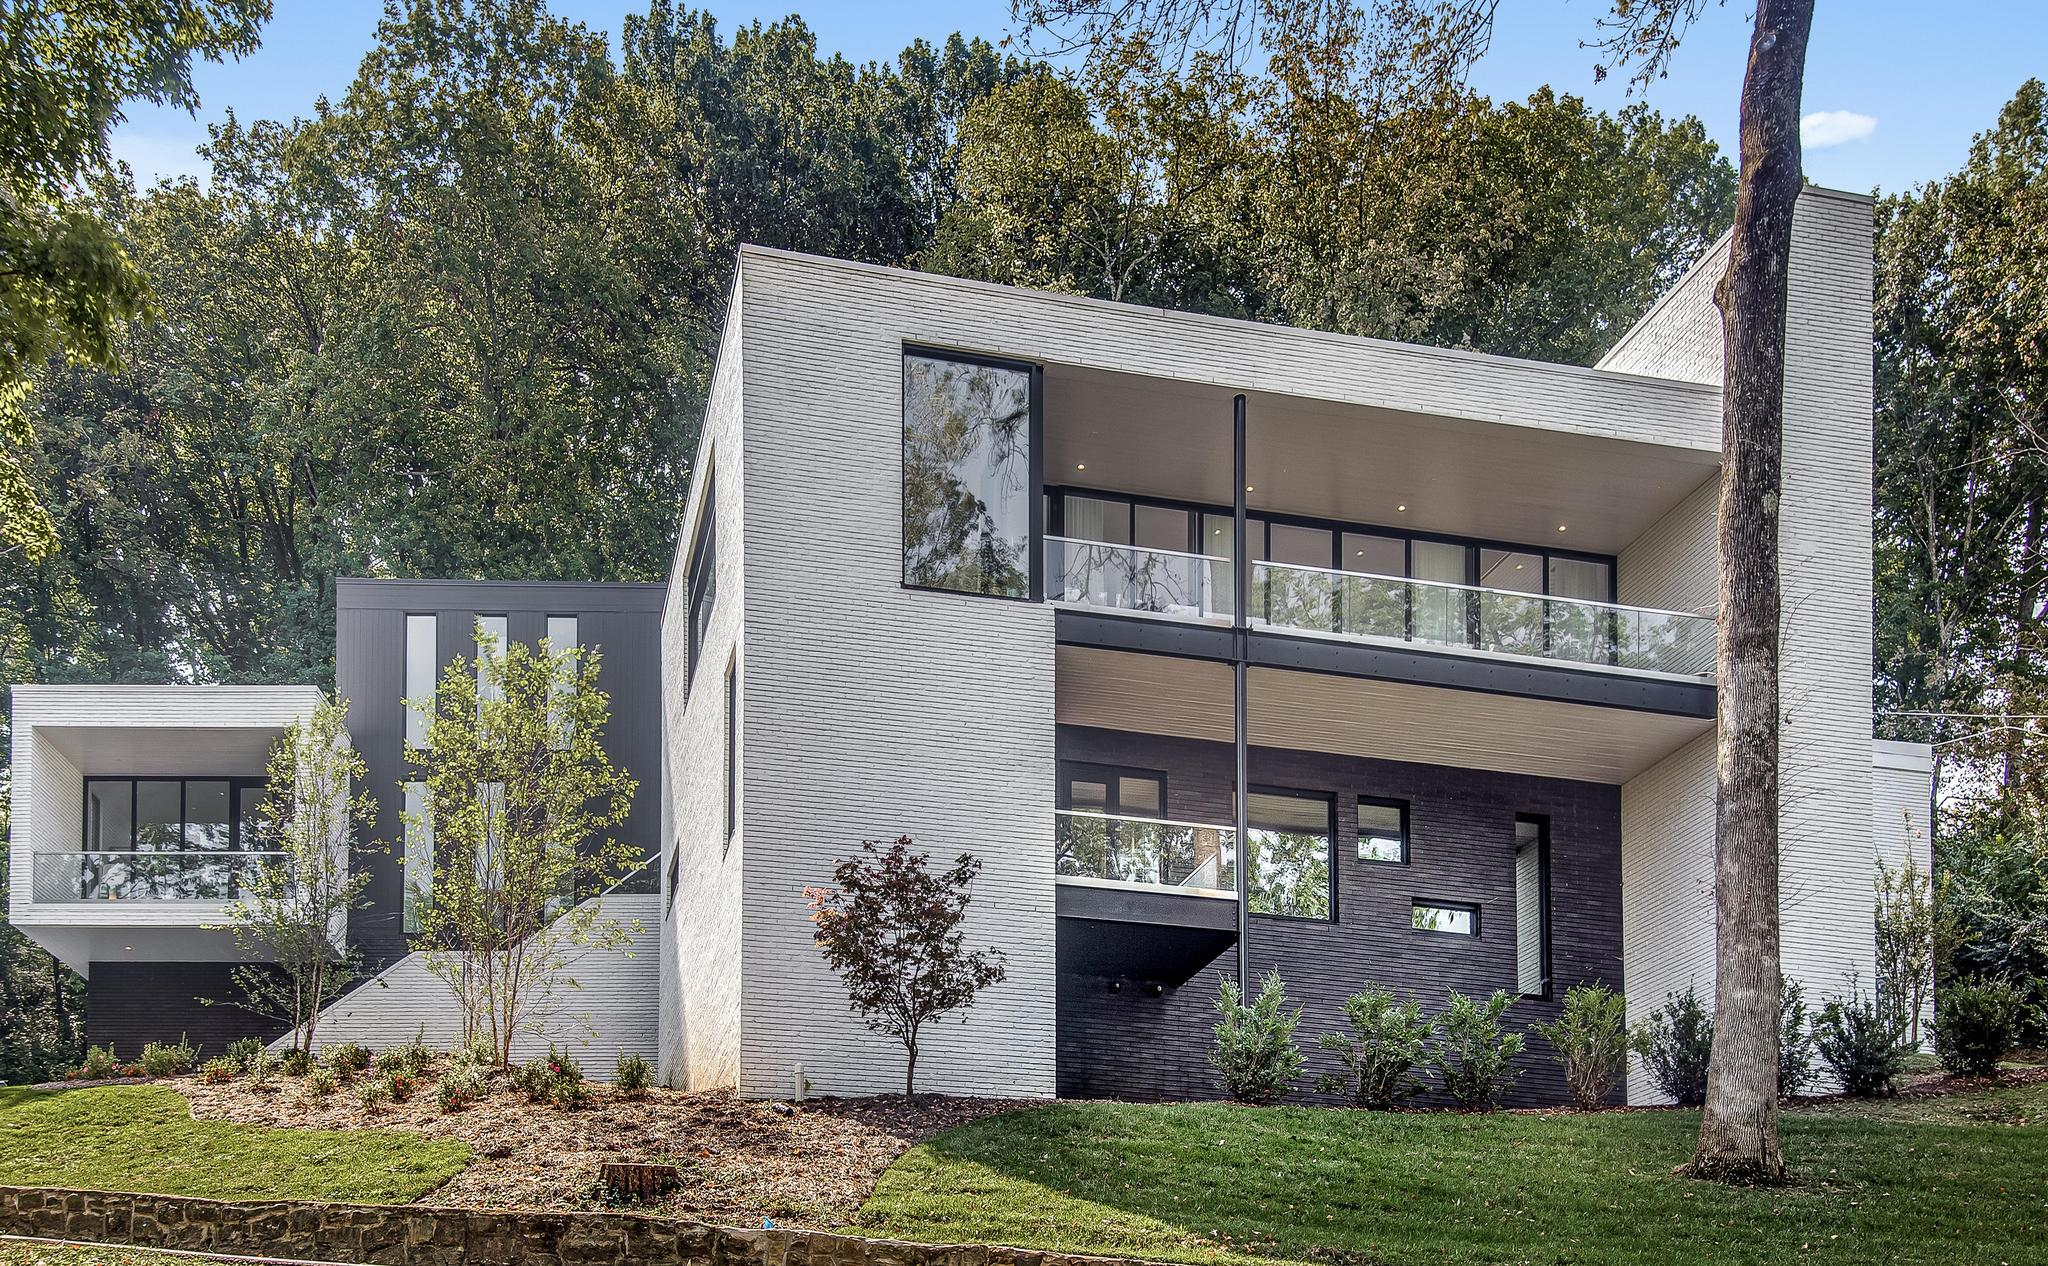 Priced significantly below recent appraisal. A once in a lifetime opportunity. 2019's top contemporary New Build perched atop a 1.4 acre hillside in Green Hills. Green views by day & twinkling city lights at night. Open concept 8,400 ft. on three levels / 3 car garage, amazing outdoor entertaining spaces. Walls of commercial glass windows,15' ceilings & deep set clerestory windows accenting a sumptuous main level gathering area. Top of the line Sub Zero, Wolf appliances, impeccable finishes.